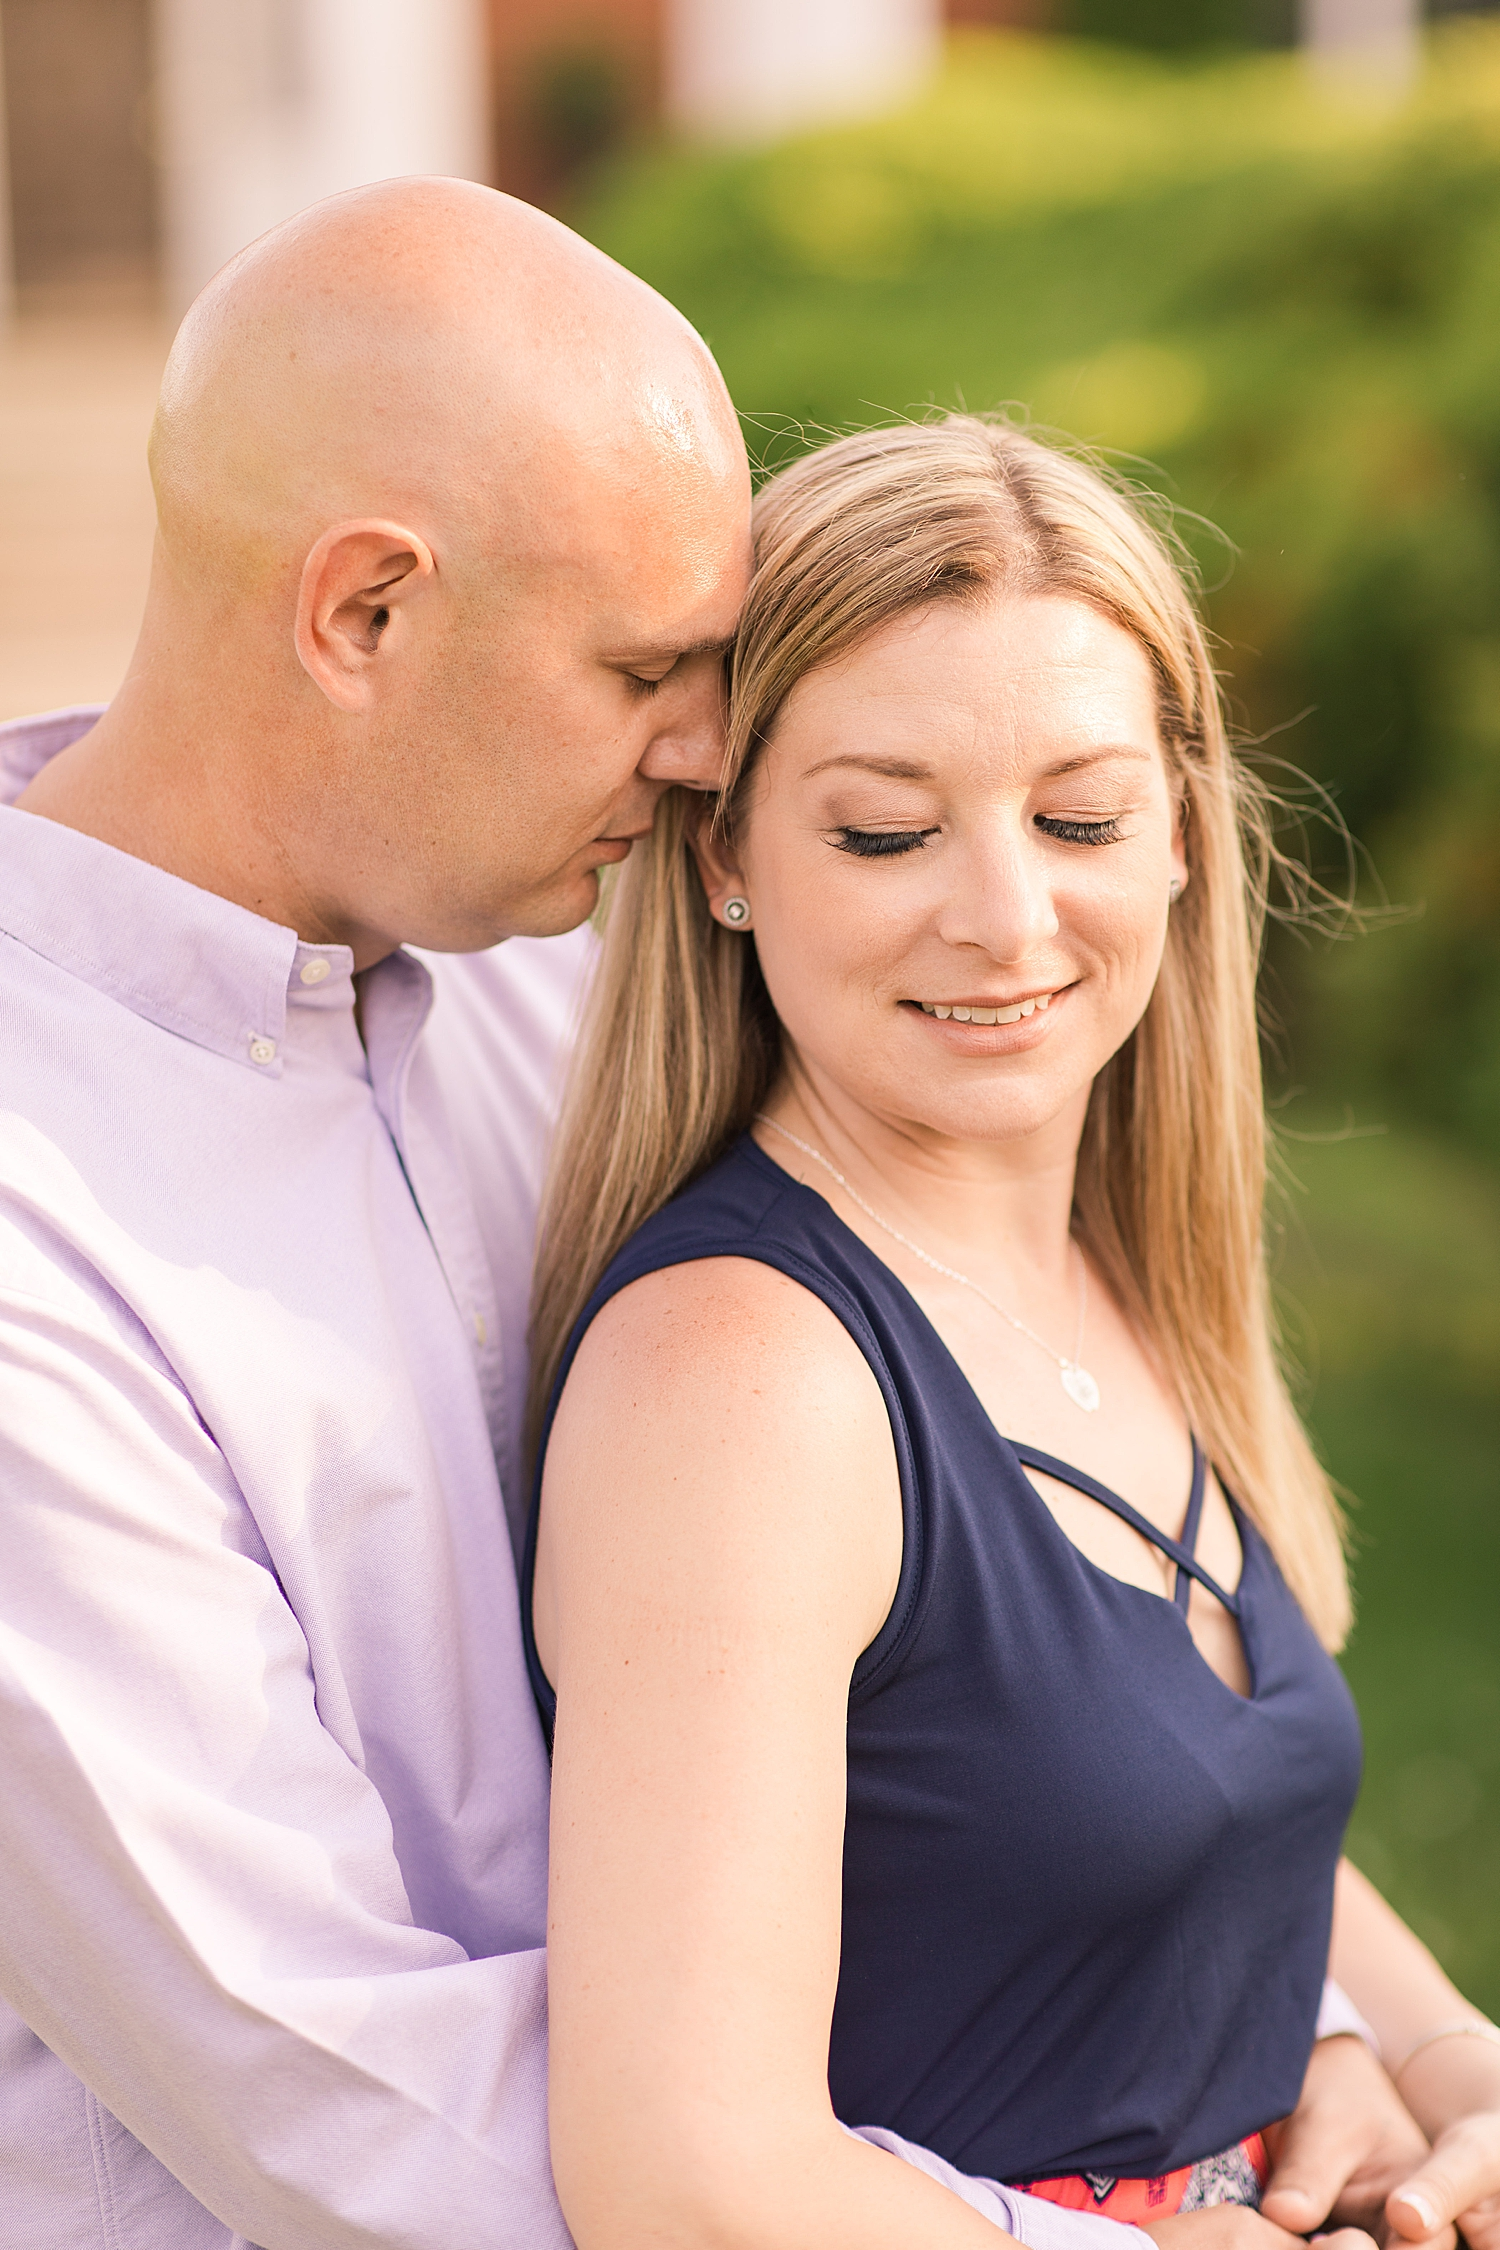 West Manor Estate Engagement Session Photo Virginia Wedding Photographer_0805.jpg